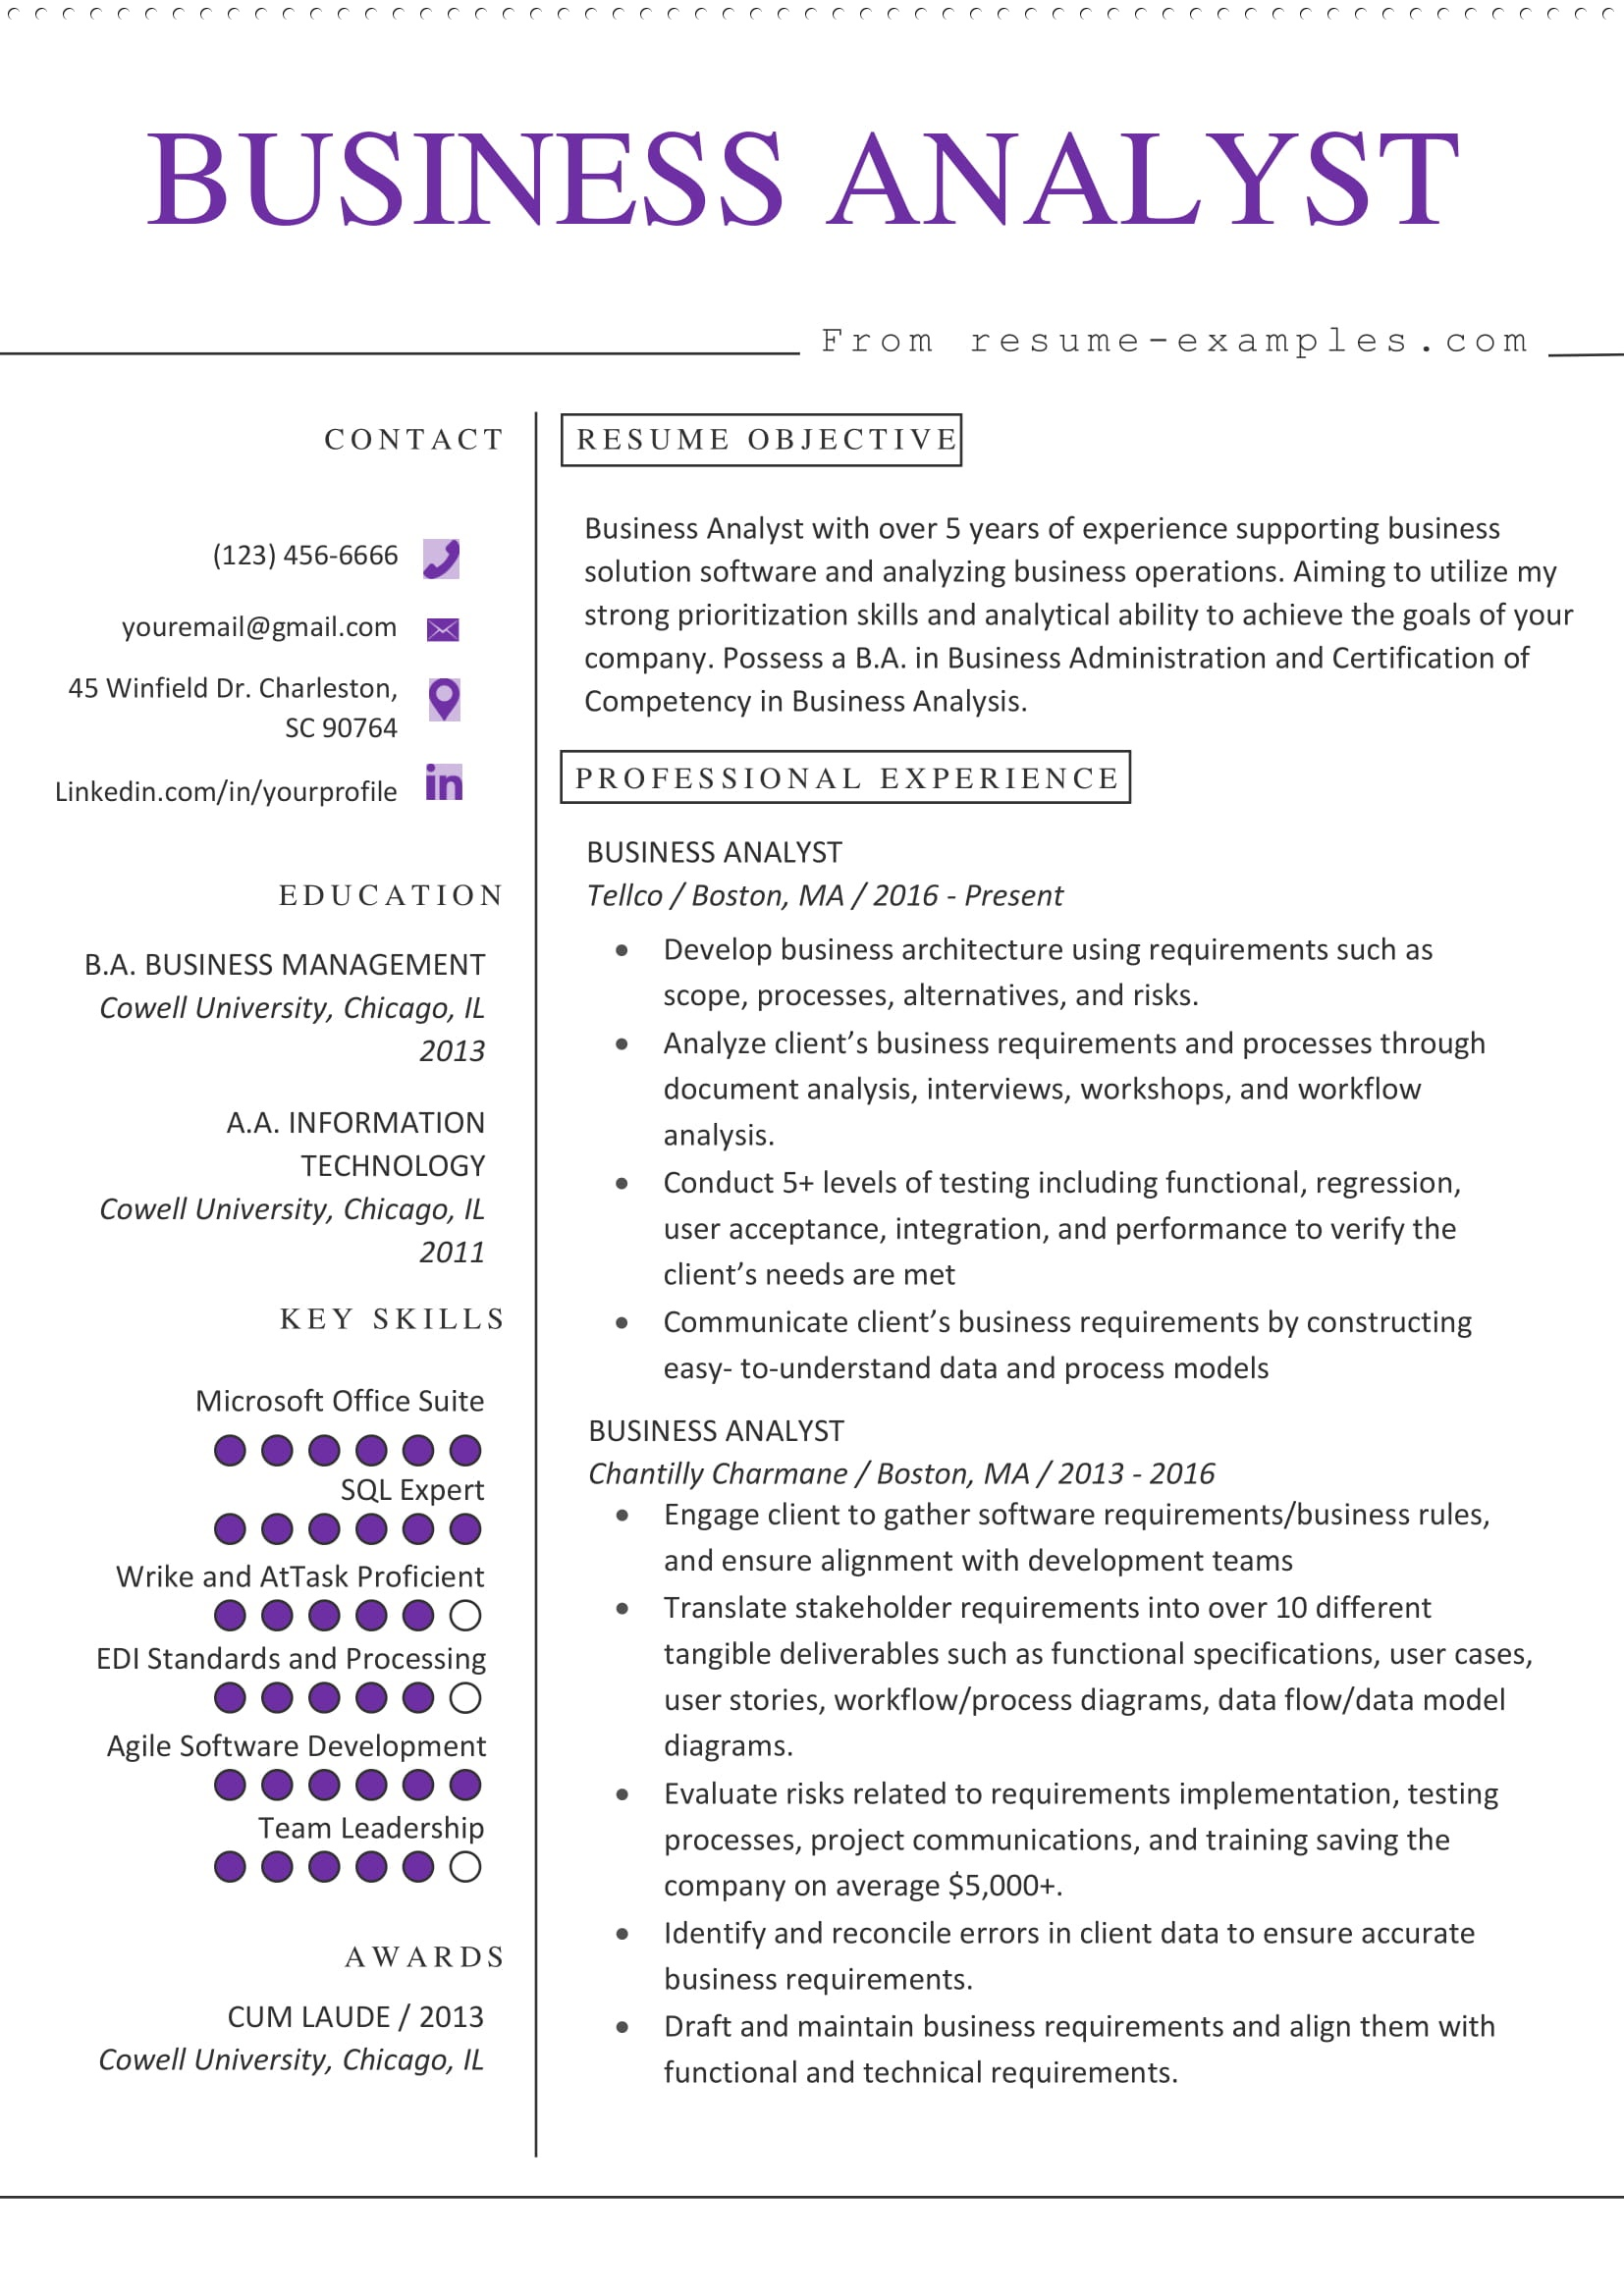 business analyst resume example microsoft word format technical skills transaction risk Resume Technical Skills Business Analyst Resume